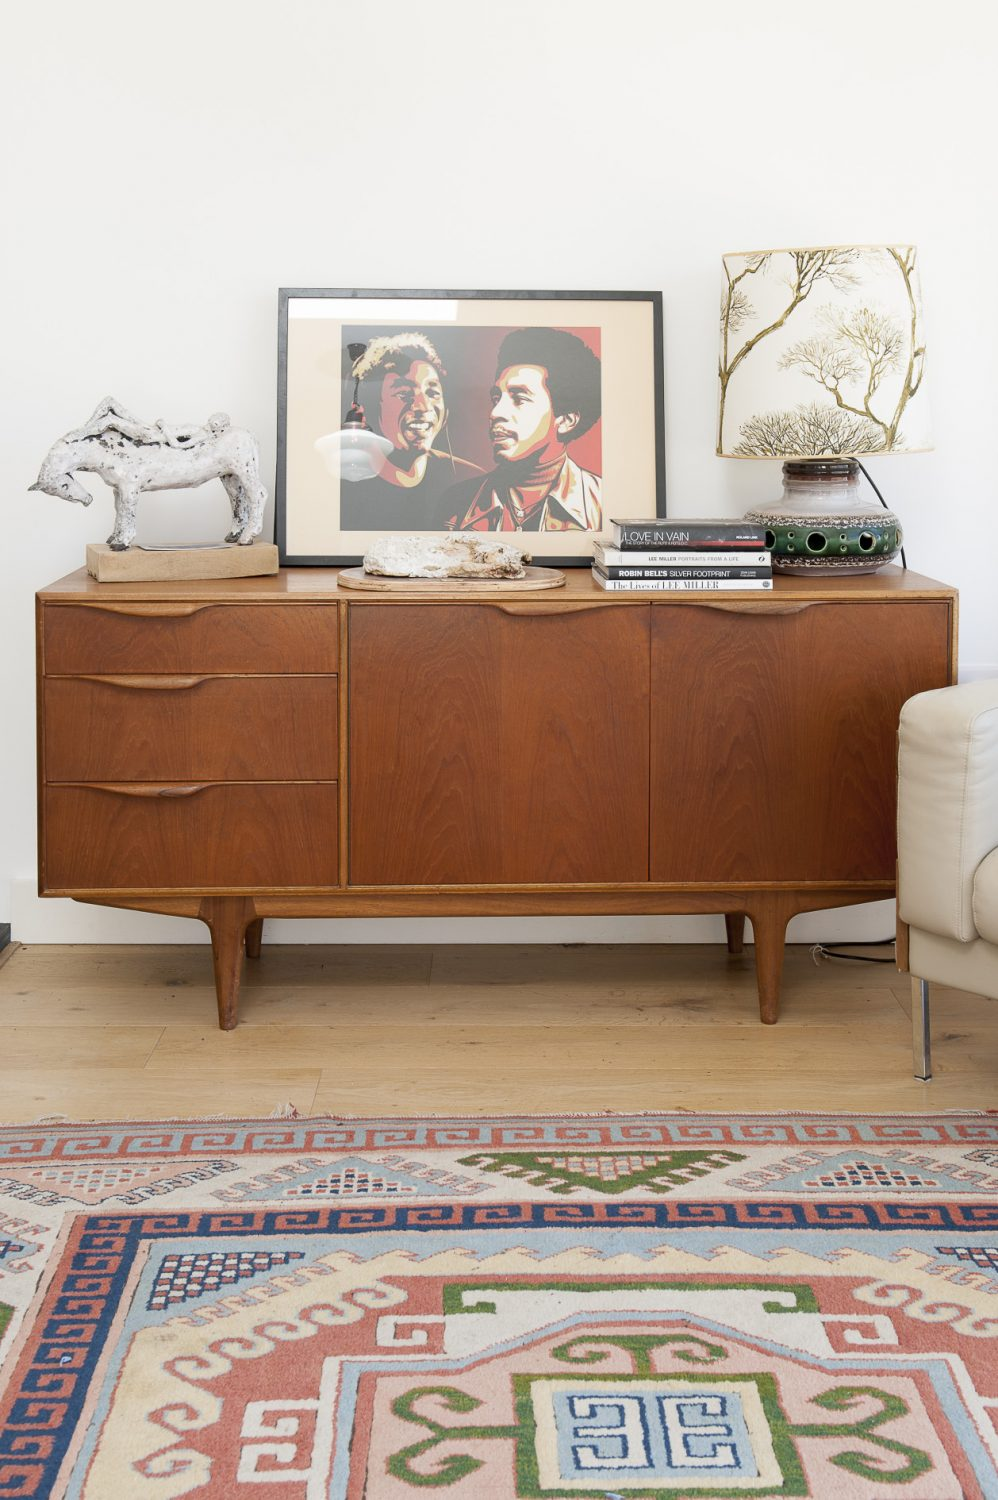 The 'new' room has a distinctly 70s feel, with McIntosh sideboard and lamps and Robin Day sofas